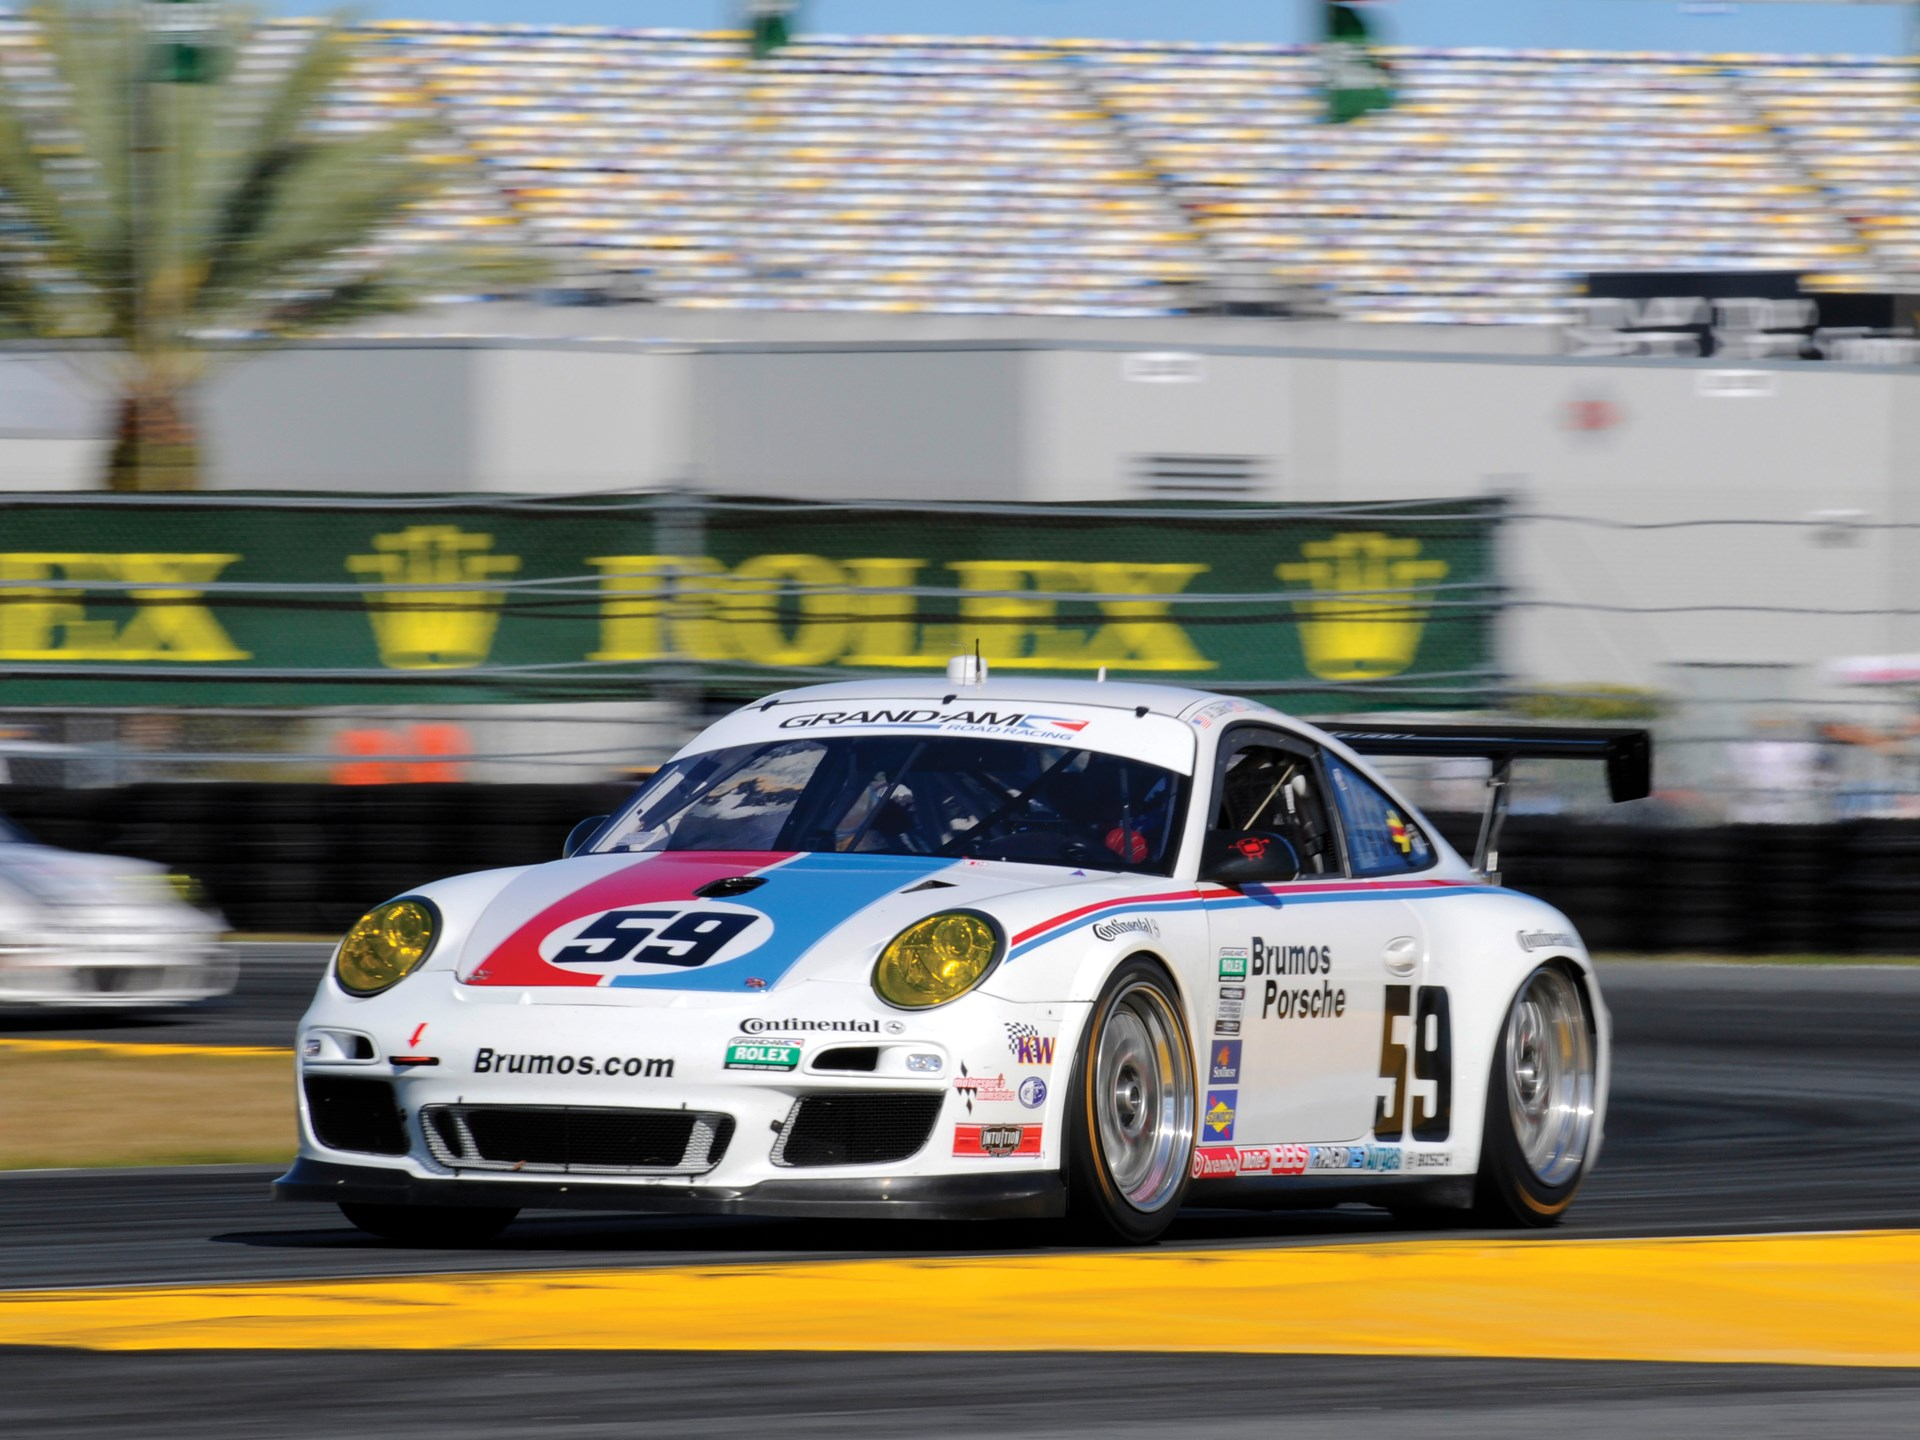 2019 Rolex 24 at Daytona with Hurley Haywood